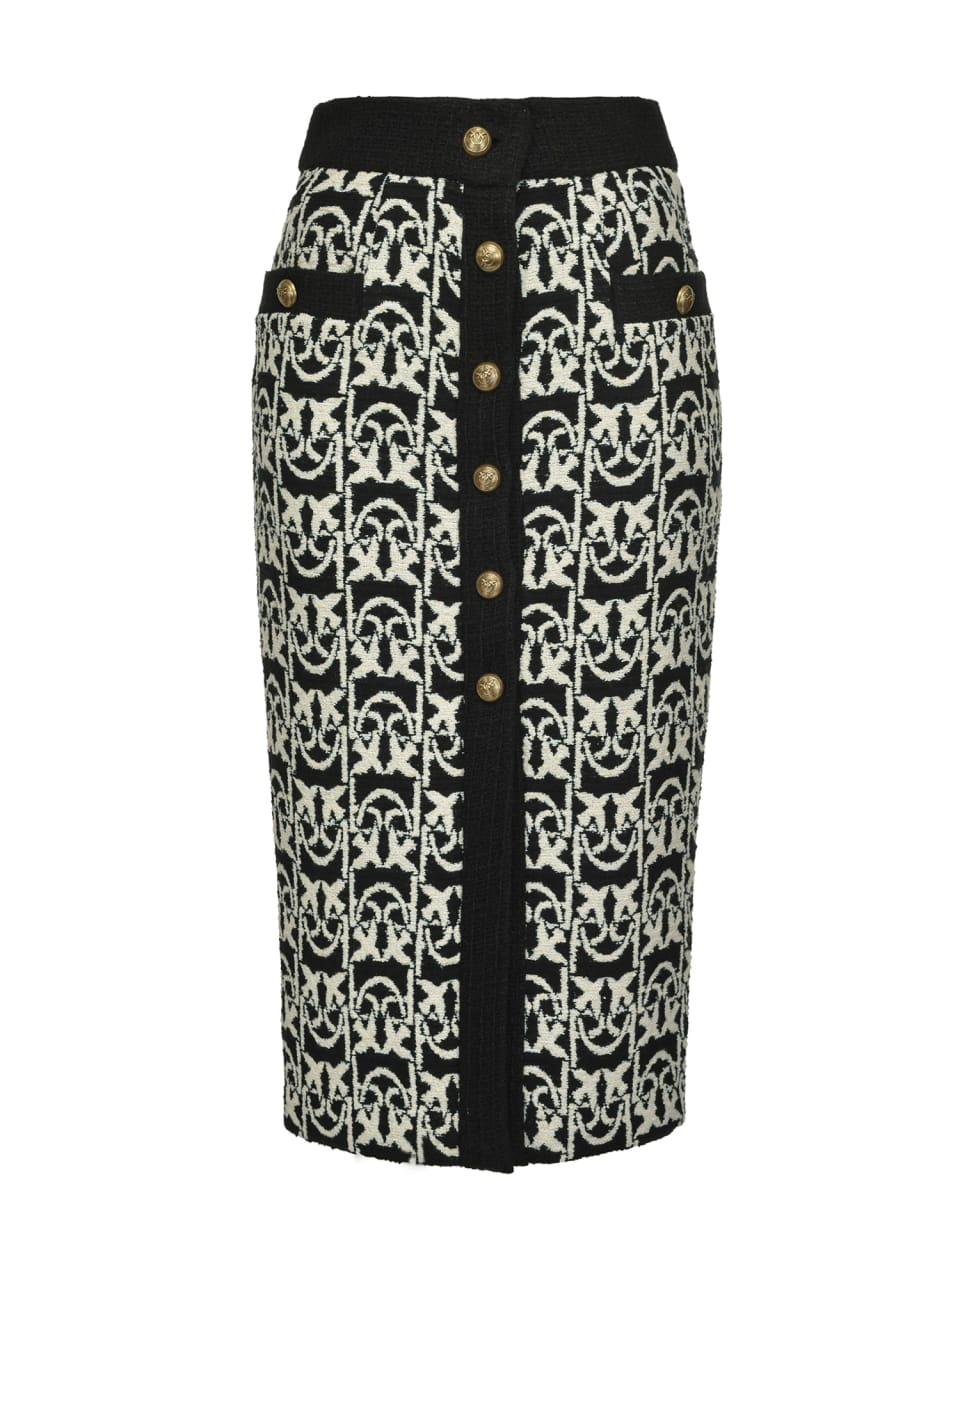 Monogram tweed midi-length skirt